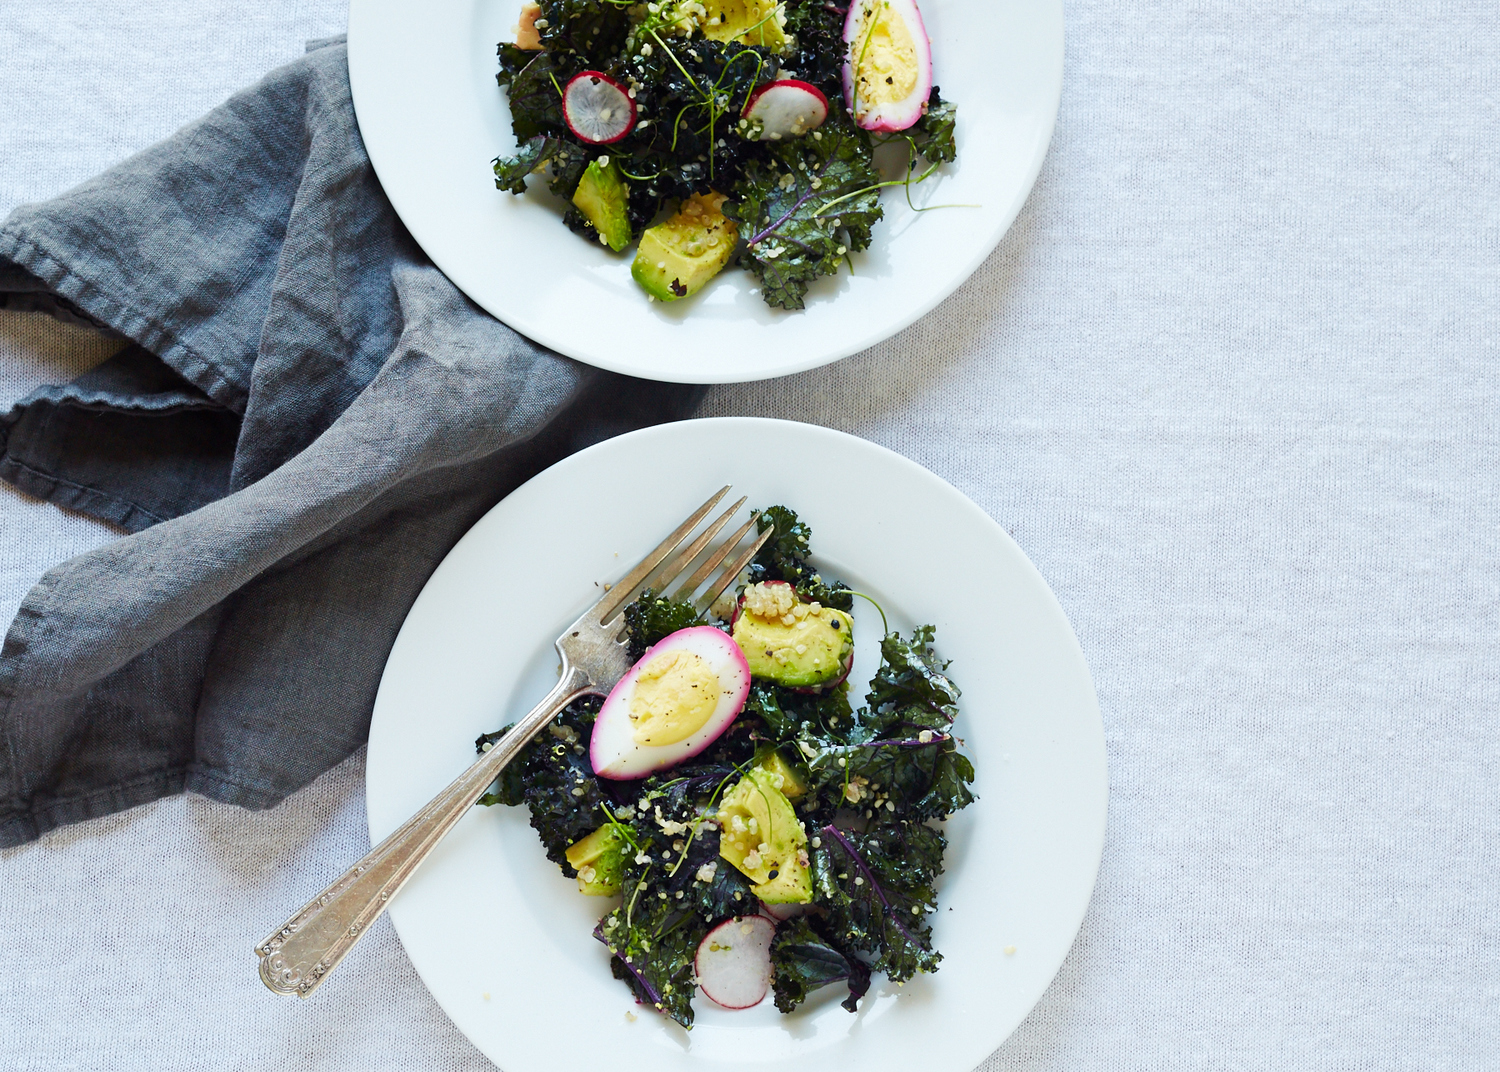 Raw Kale Salad with Beet-pickled Egg & Quinoa (GF, DF)